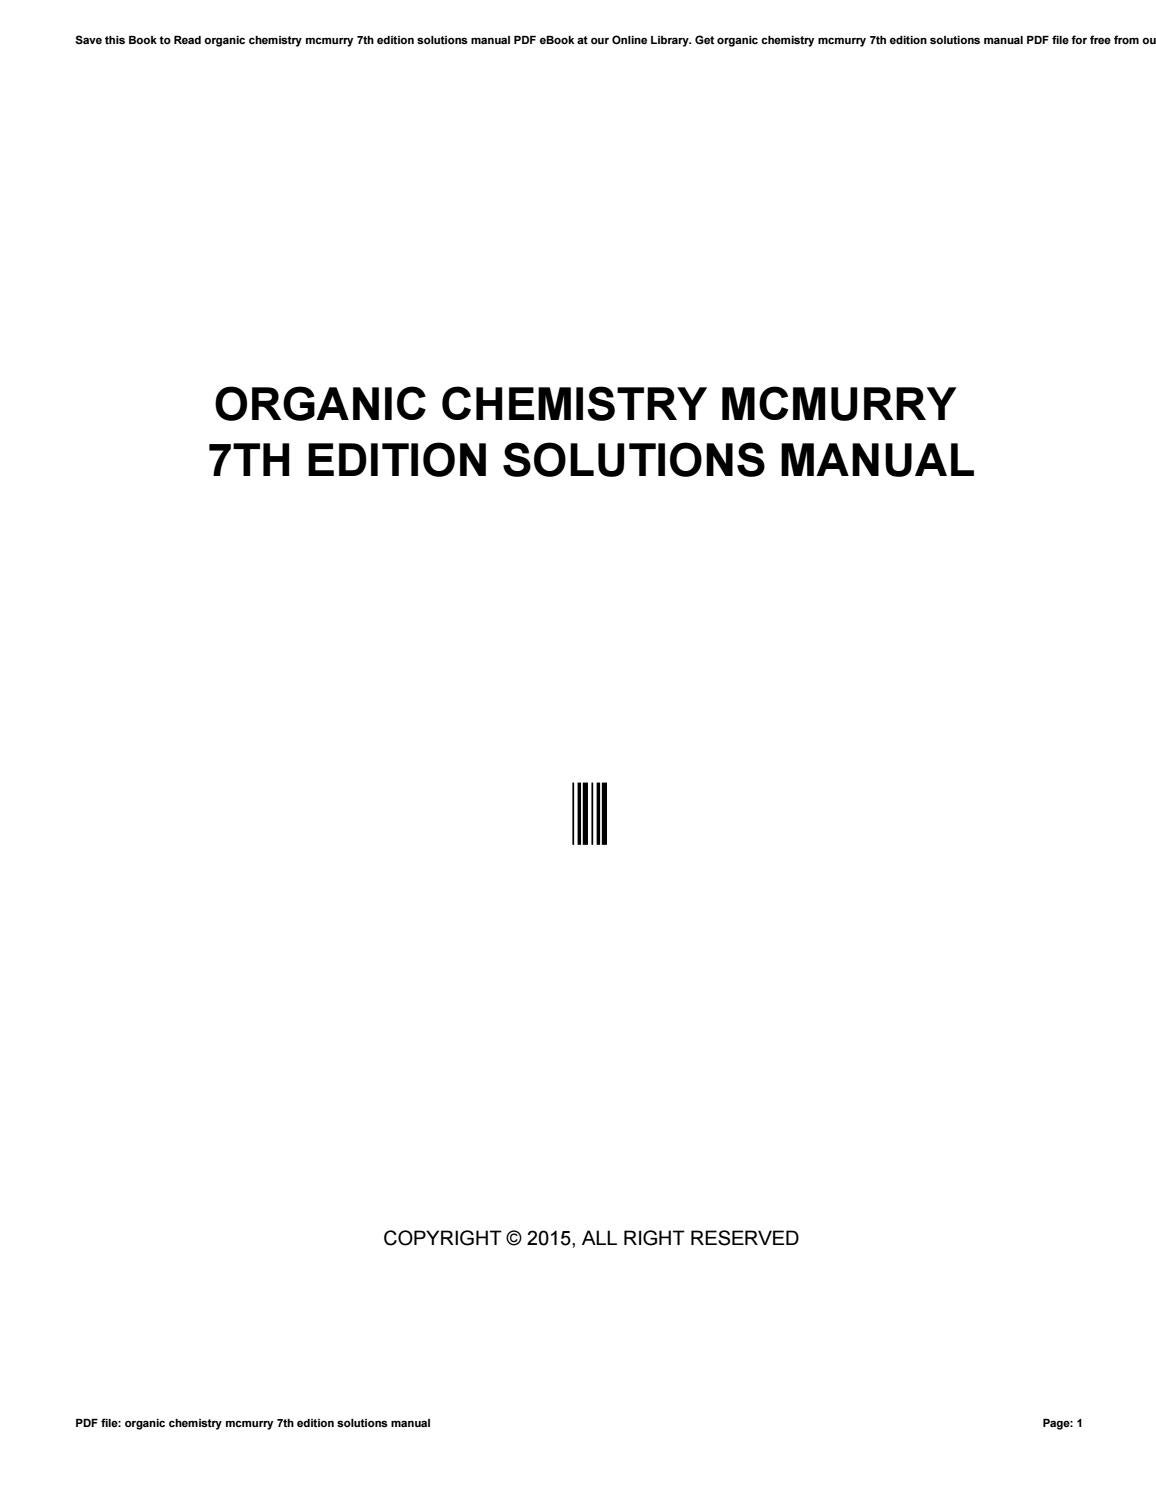 Organic chemistry mcmurry 7th edition solutions manual by apssdc198 - issuu